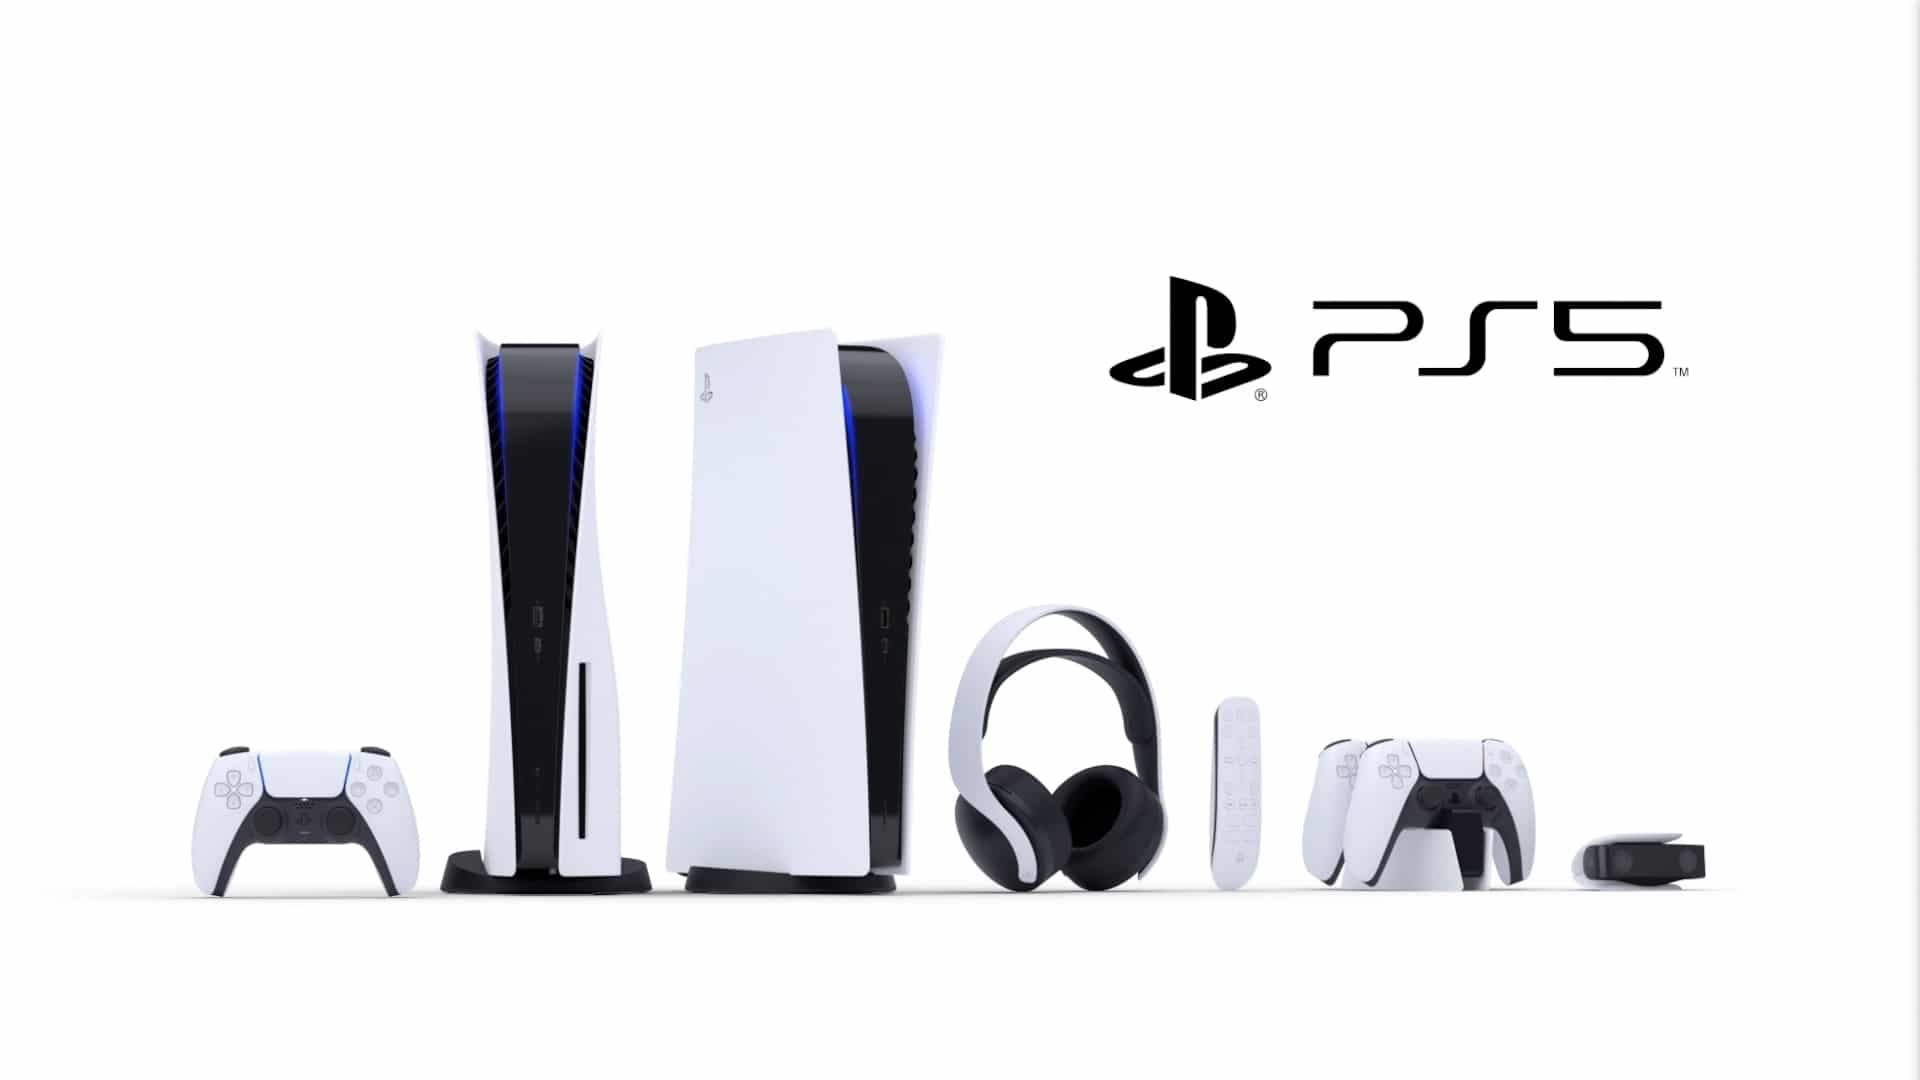 Here is the new PS5 lineup